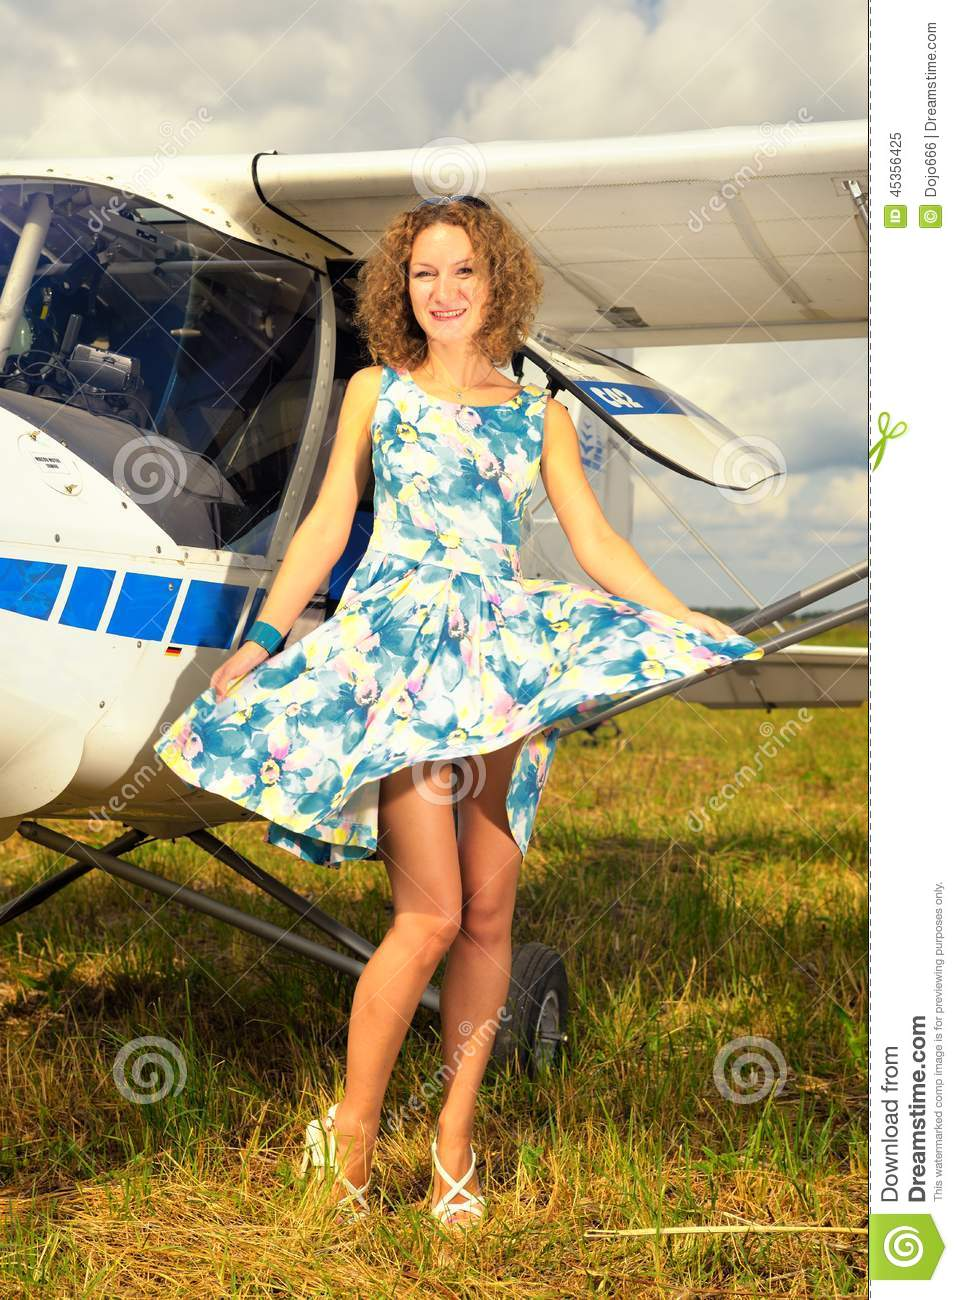 Femme beautyful de mode dans l avion ultra-léger voisin de robe de pin-up de style